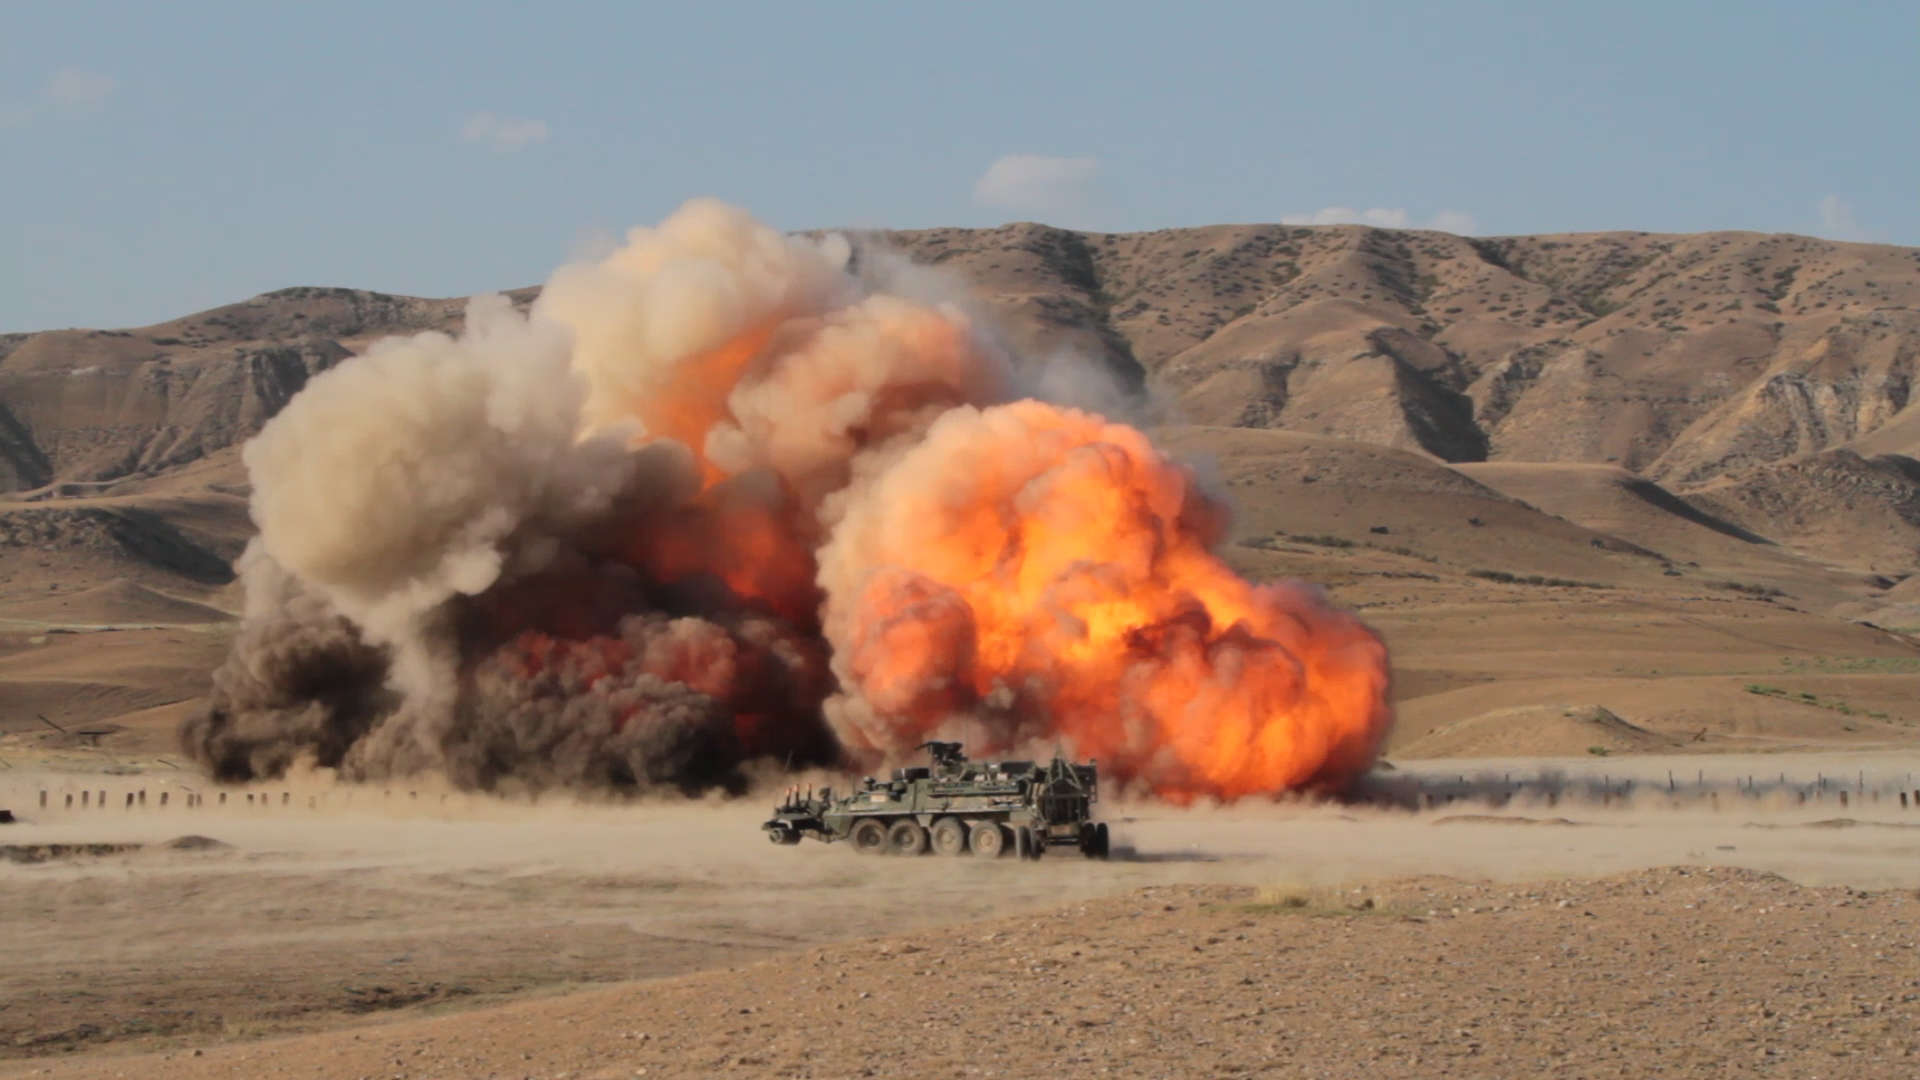 VAZIANI TRAINING AREA, Georgia — The Mine Clearing Line Charge (MICLIC) explodes in a Georgian obstacle during a rehearsal for the combined arms live fire, Vaziani Training Area, Georgia, Aug. 10, 2017. The live fire displays coordination between different assets and is a demonstration of combined capability. The live fire is the last training event before the closing of Exercise Noble Partner. Exercise Noble Partner is a multinational, U.S. Army Europe-led exercise conducting home station training for the Georgian light infantry company designated for the NATO Response Force. (U.S. Army photo by Sgt. Joshua Joyner)